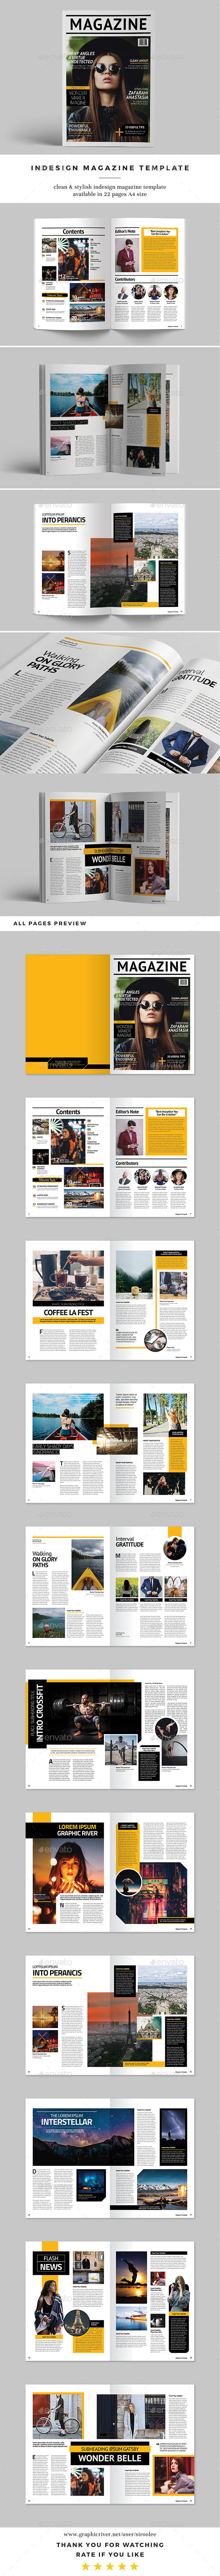 InDesign Magazine Template by siroolee | GraphicRiver